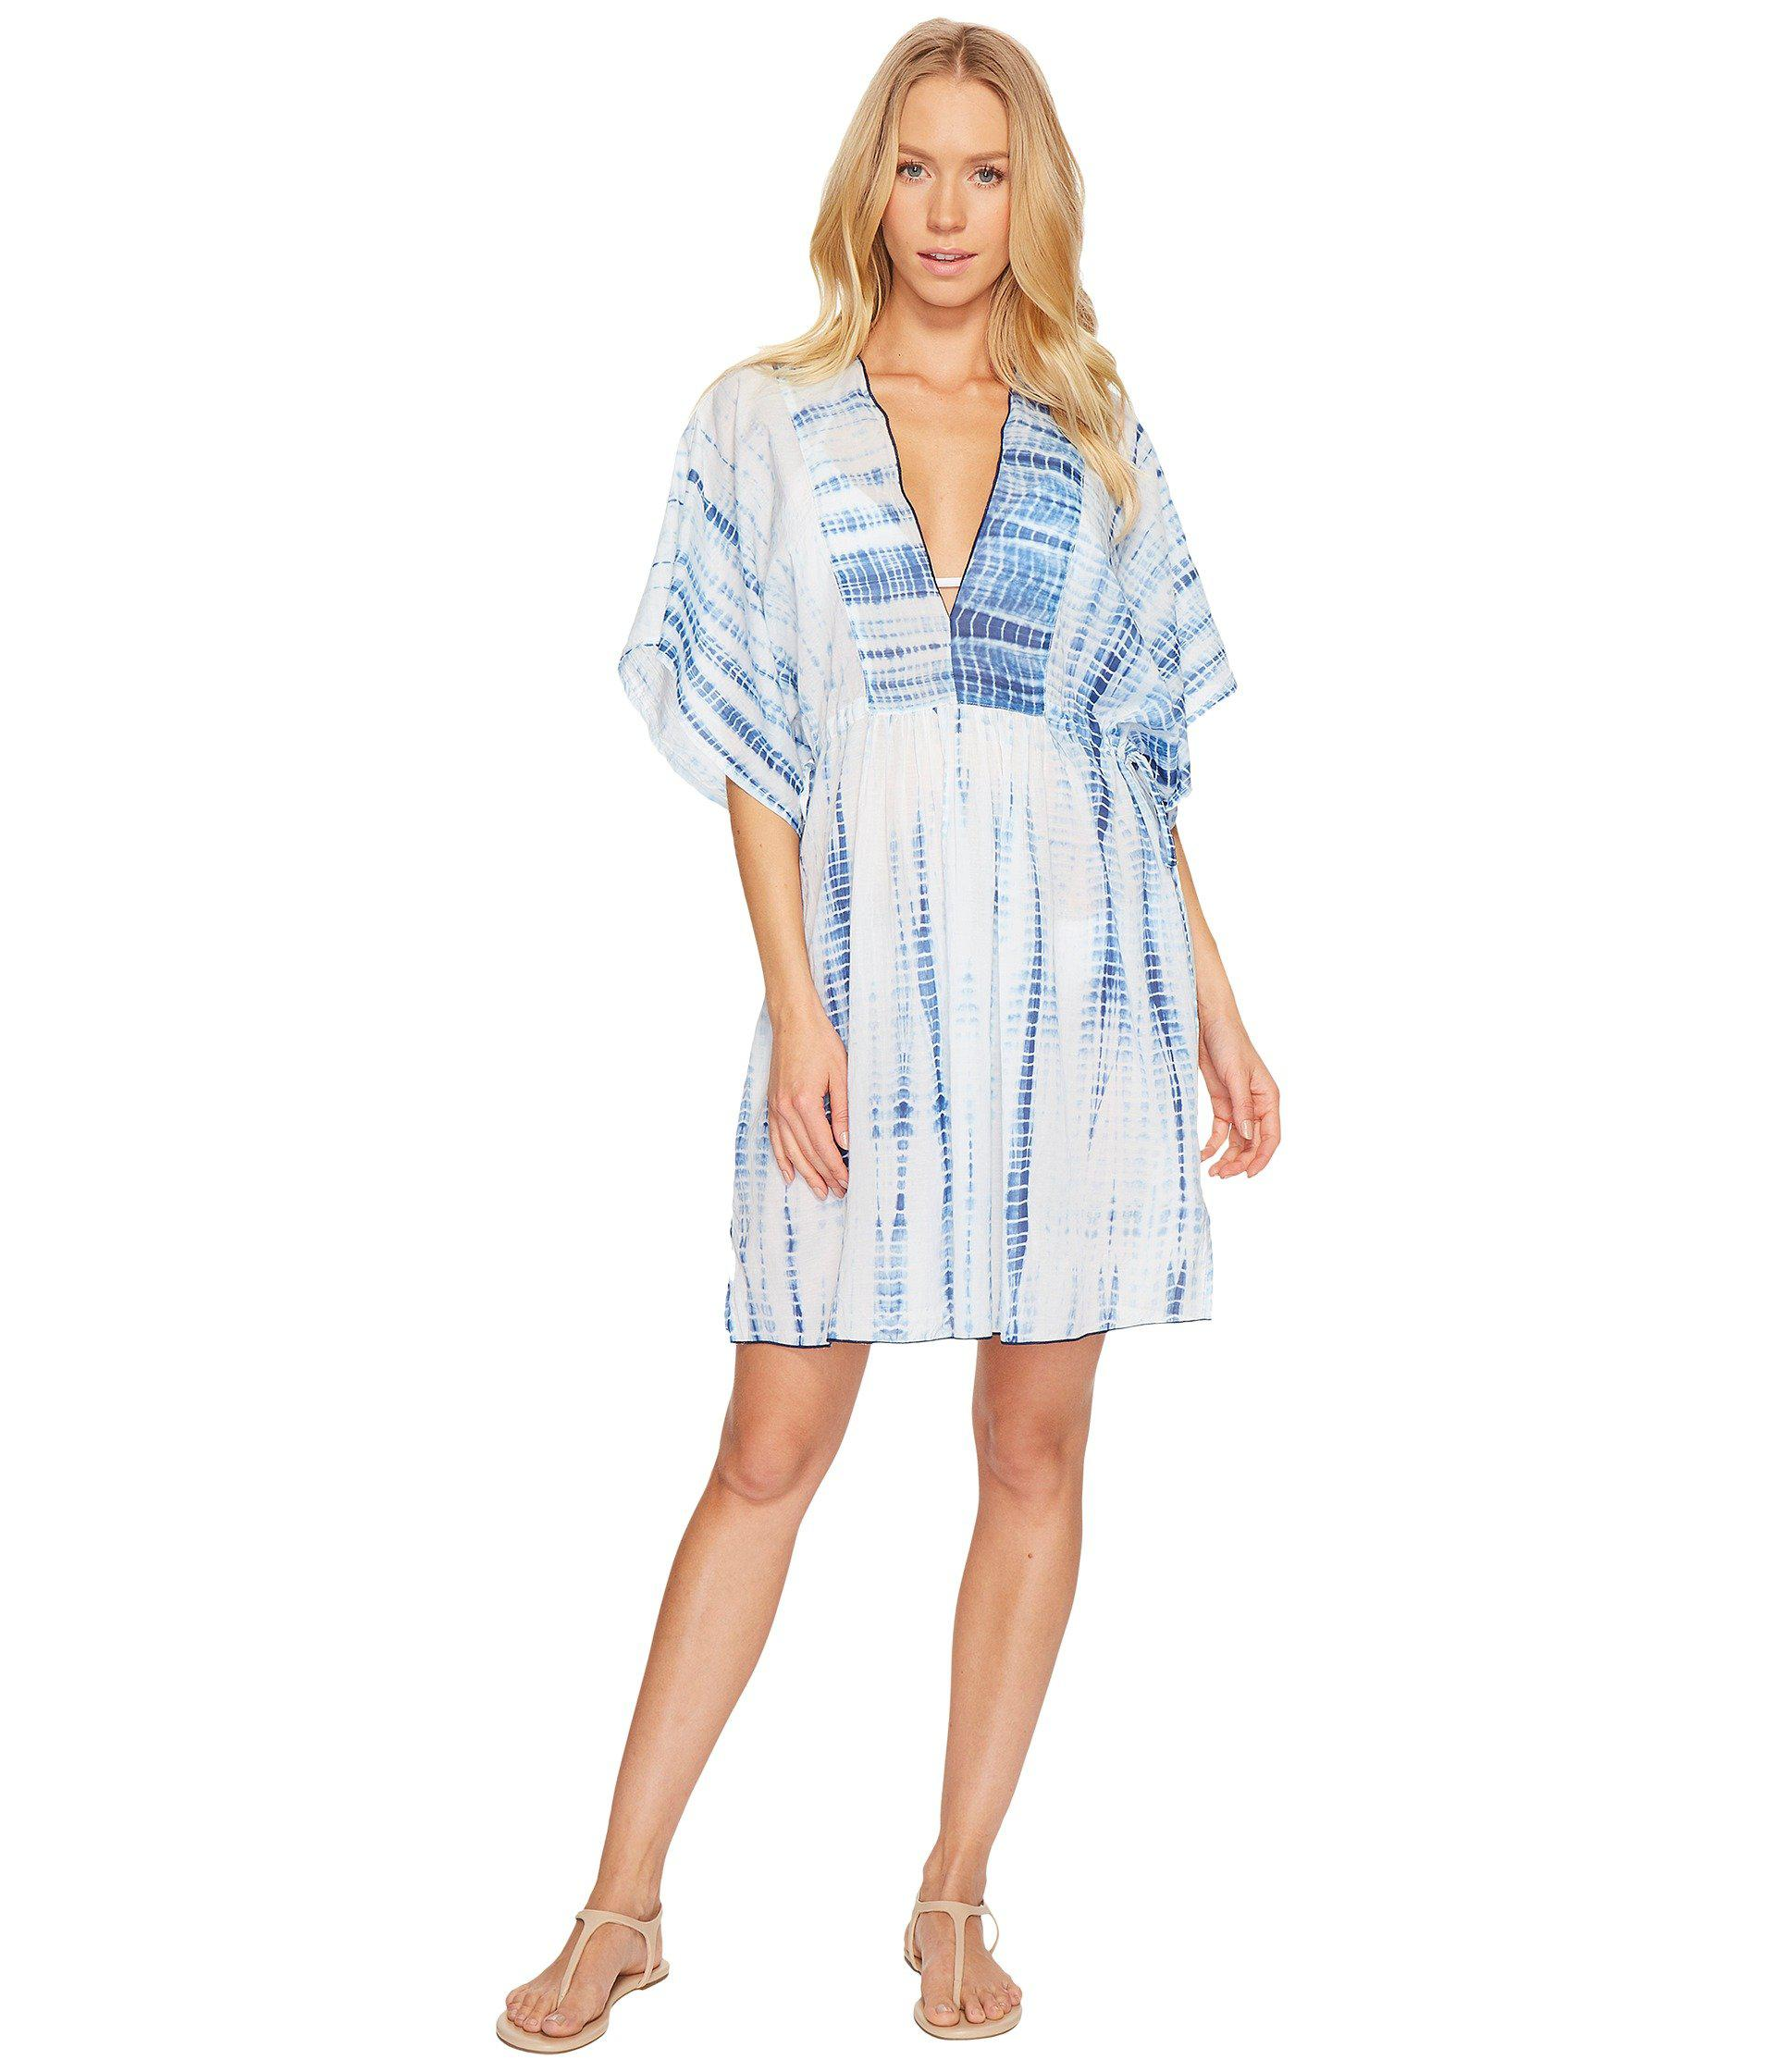 c789d3a7385db2 Lyst - Polo Ralph Lauren Voile Tie Back Tunic Cover-up (blue white ...